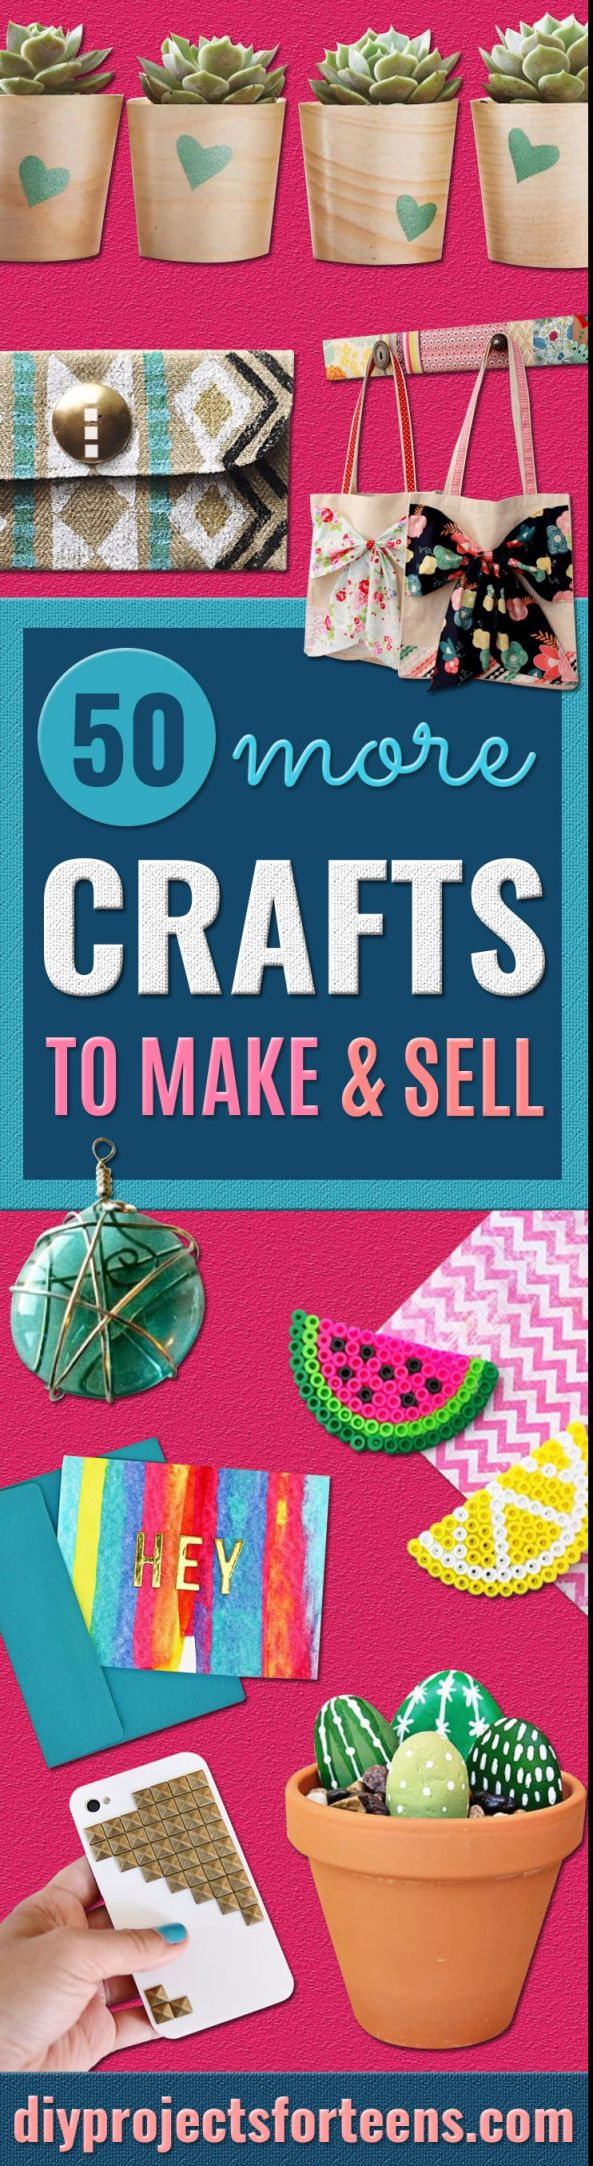 Fantastic crafts to make and sell for profit